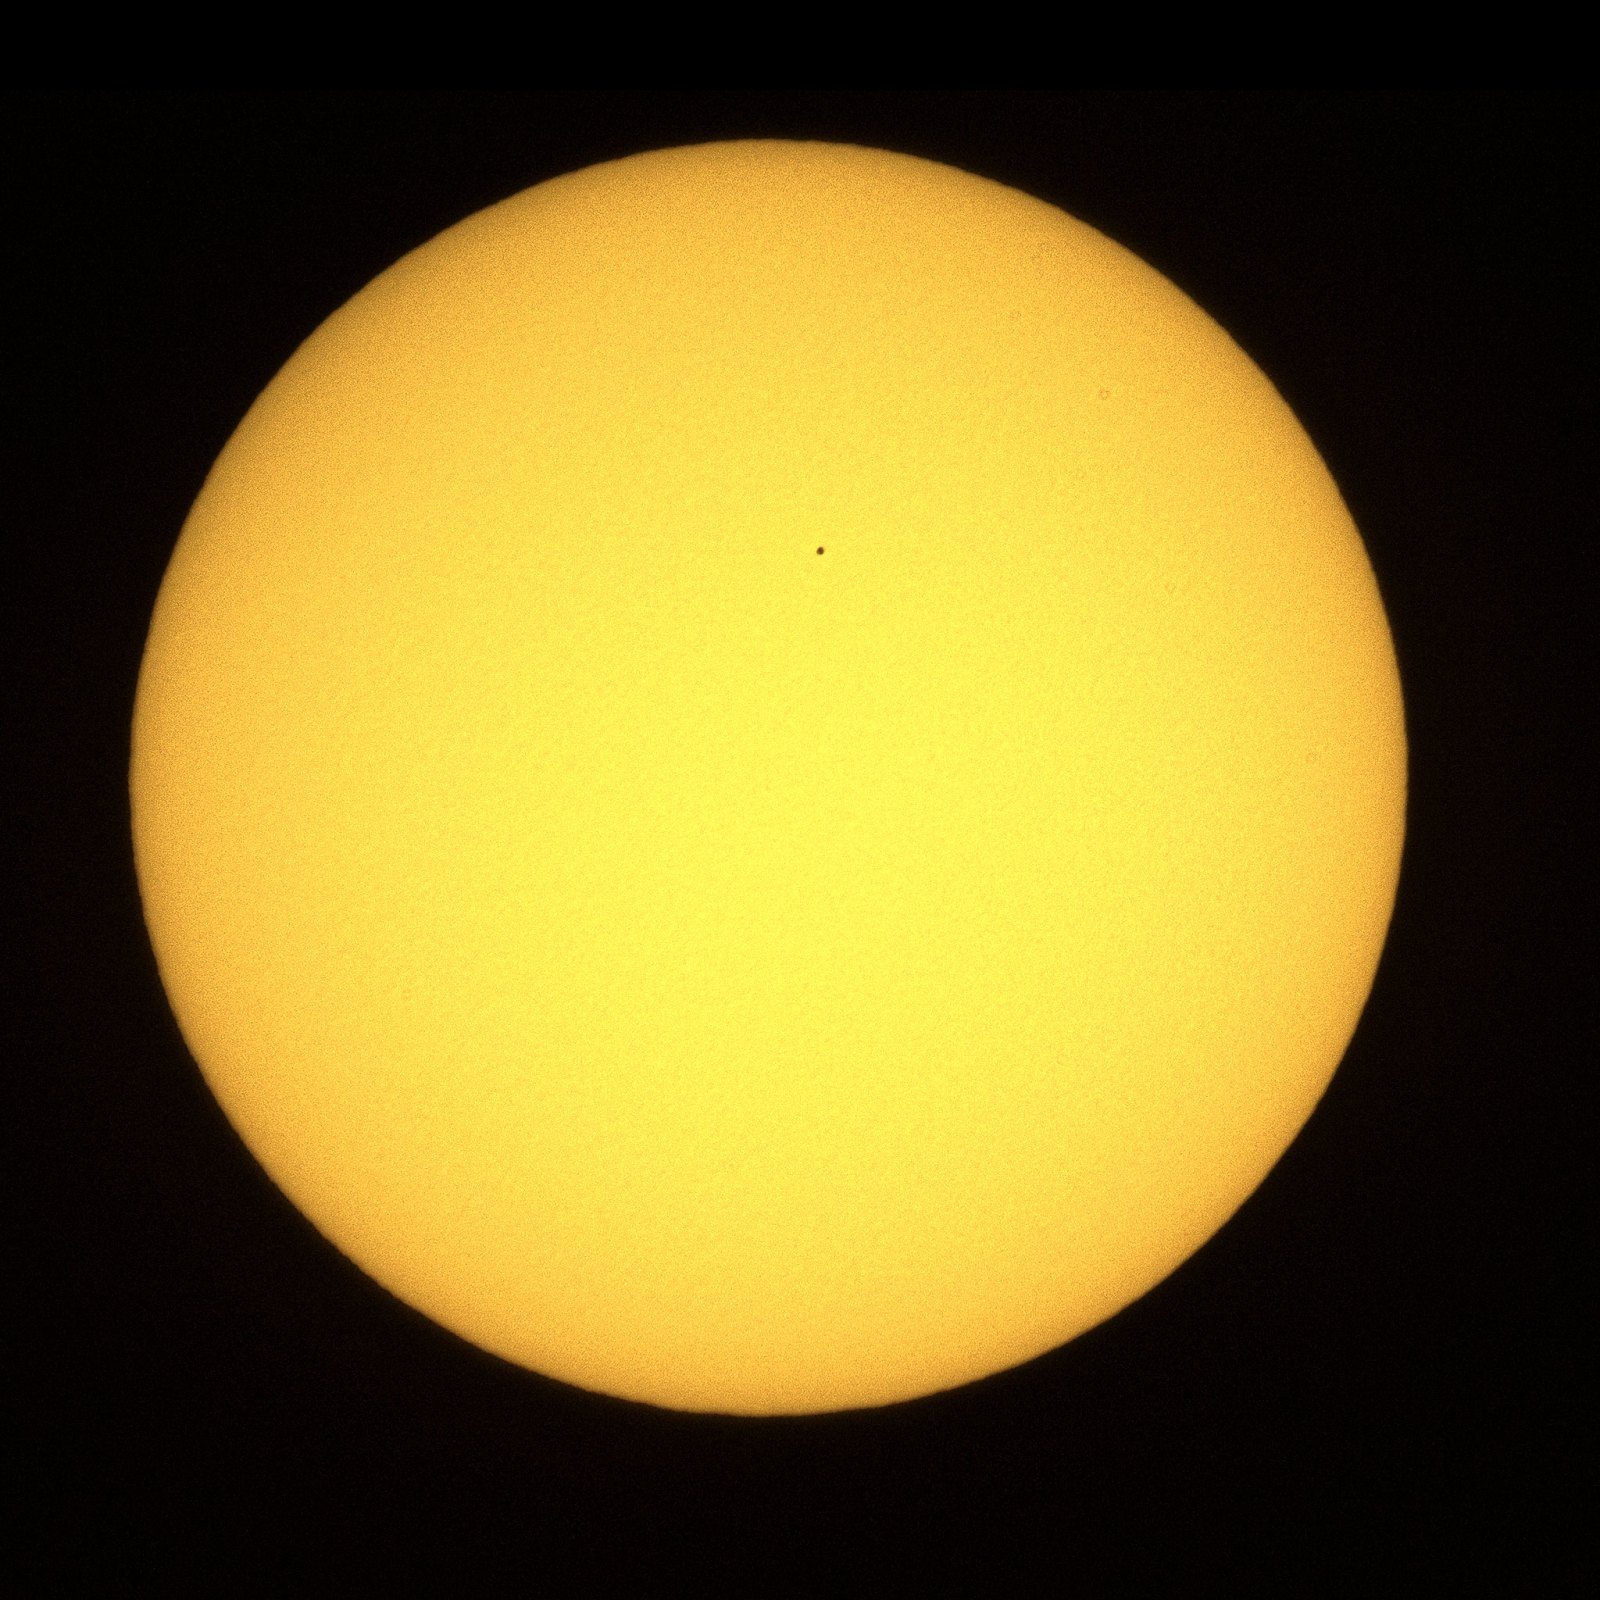 Mercury Transiting the Sun